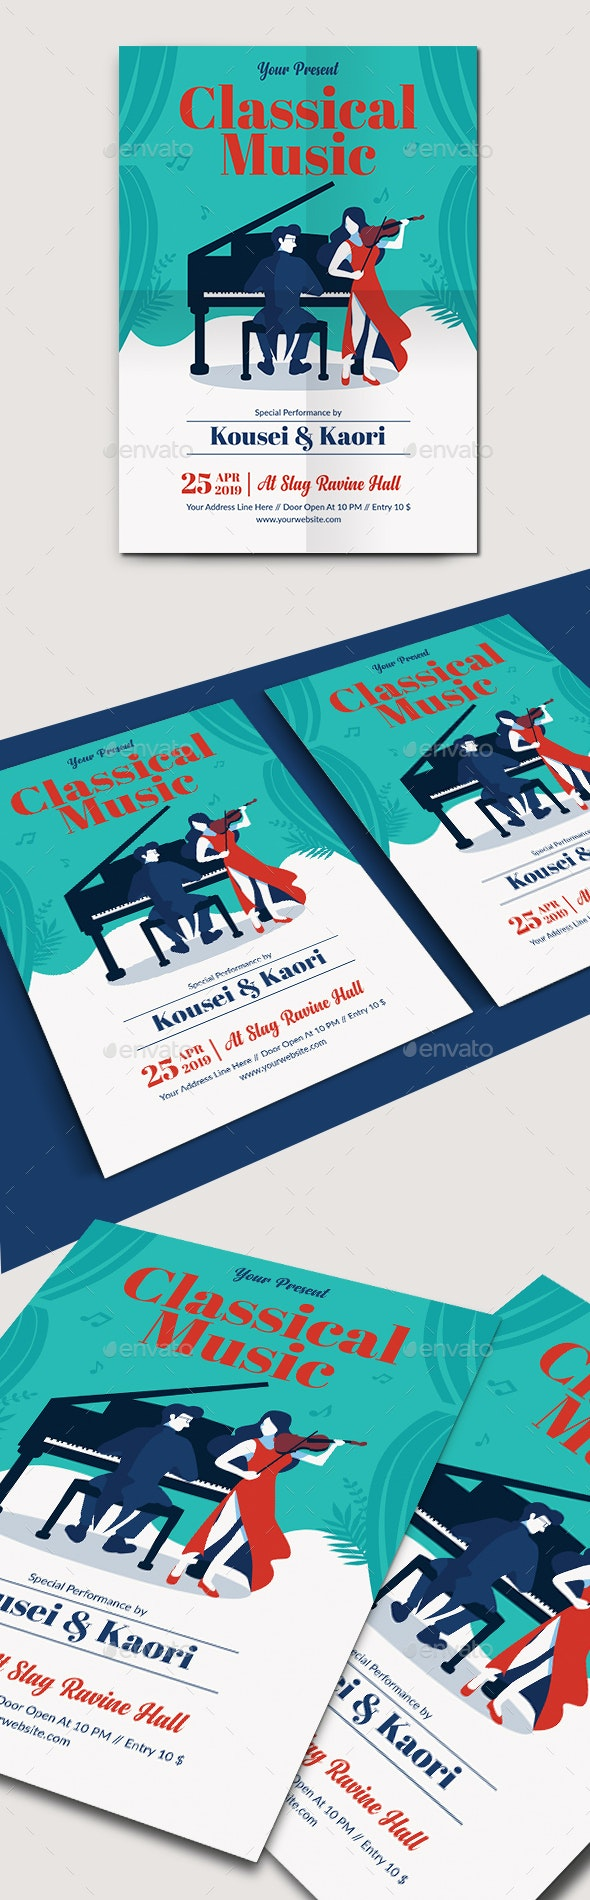 Classical Music Flyer Template - Concerts Events